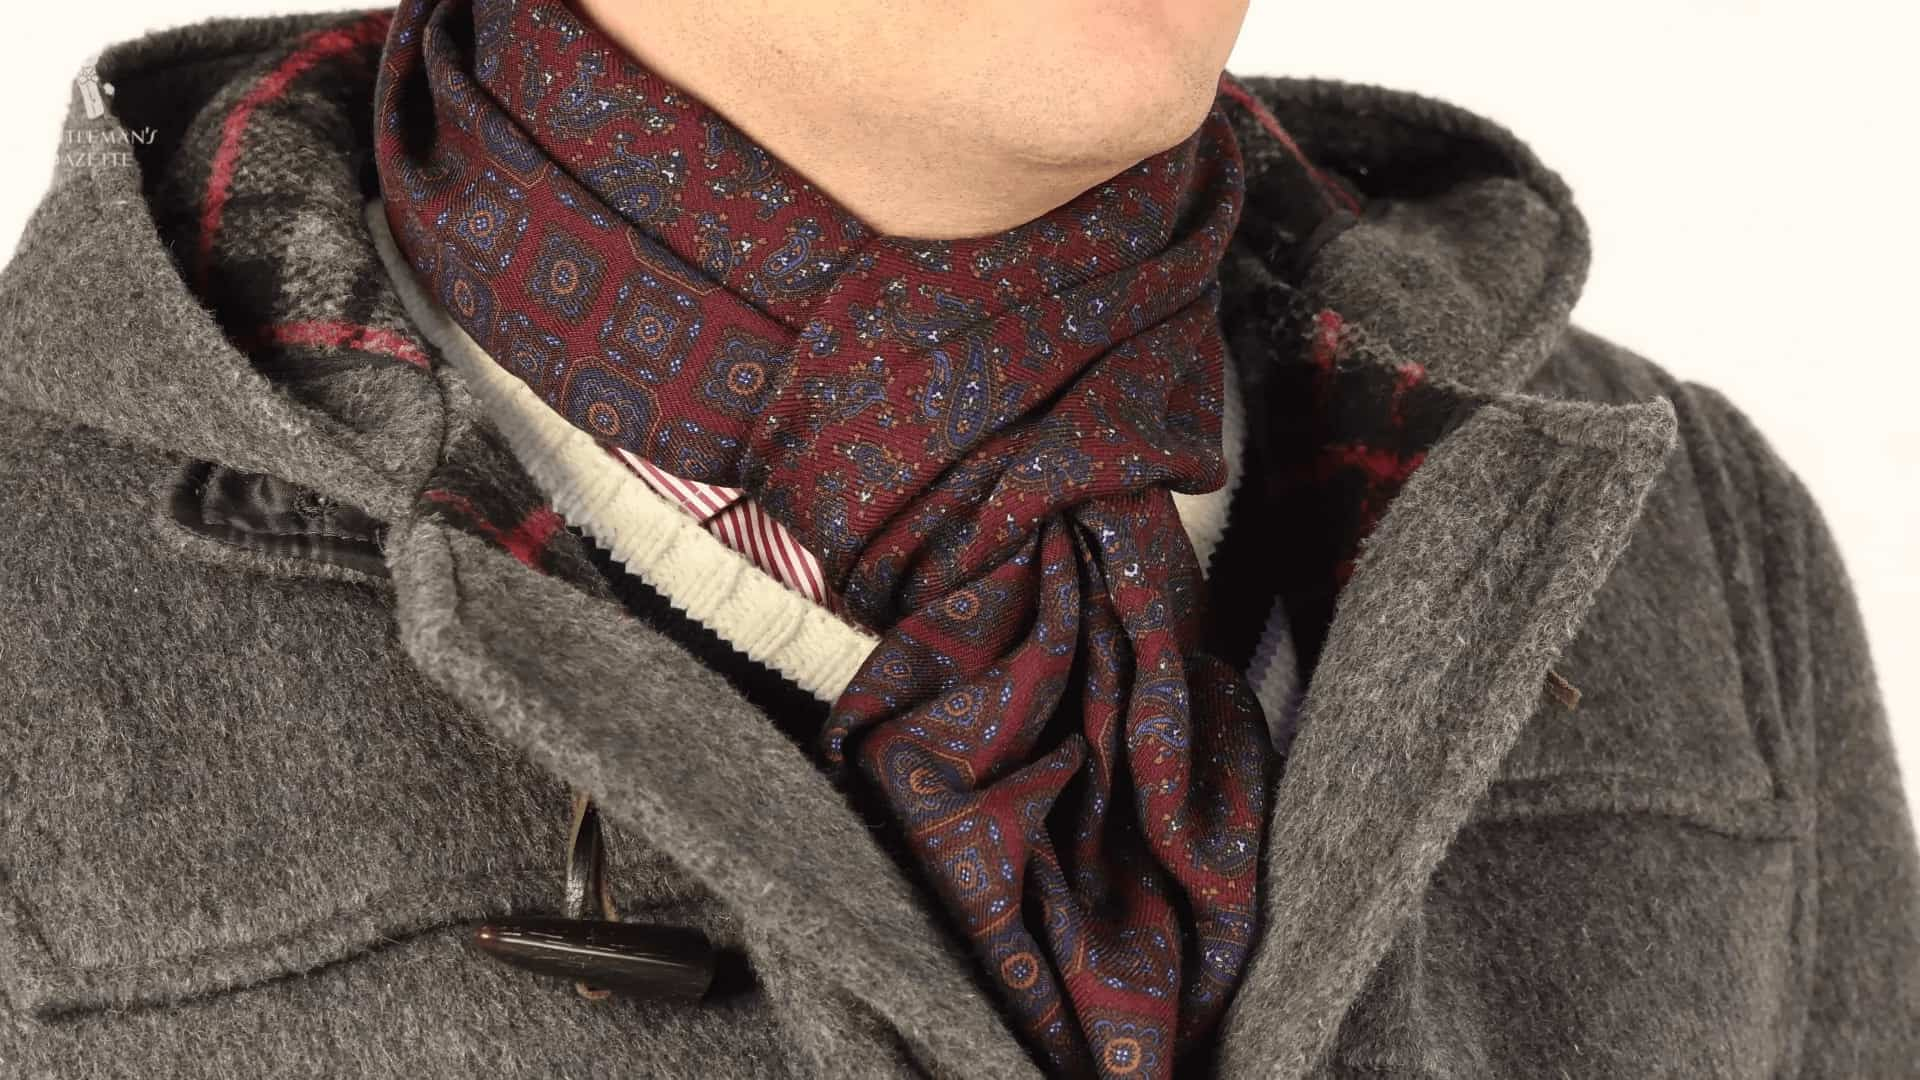 Reversible Scarf in Burgundy Red and Blue Silk Wool Motifs and Paisley - Fort Belvedere